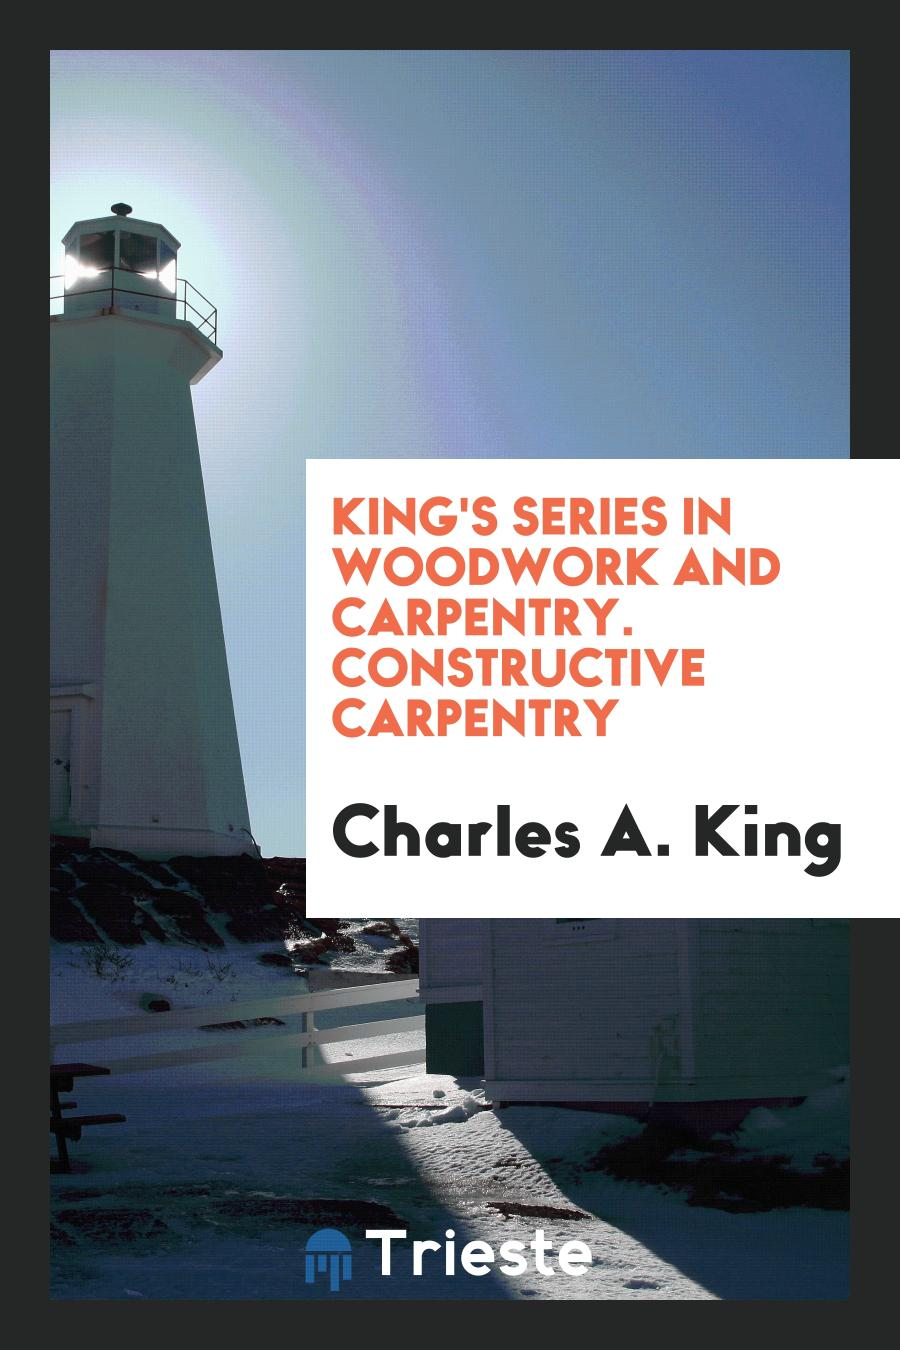 King's Series in Woodwork and Carpentry. Constructive Carpentry